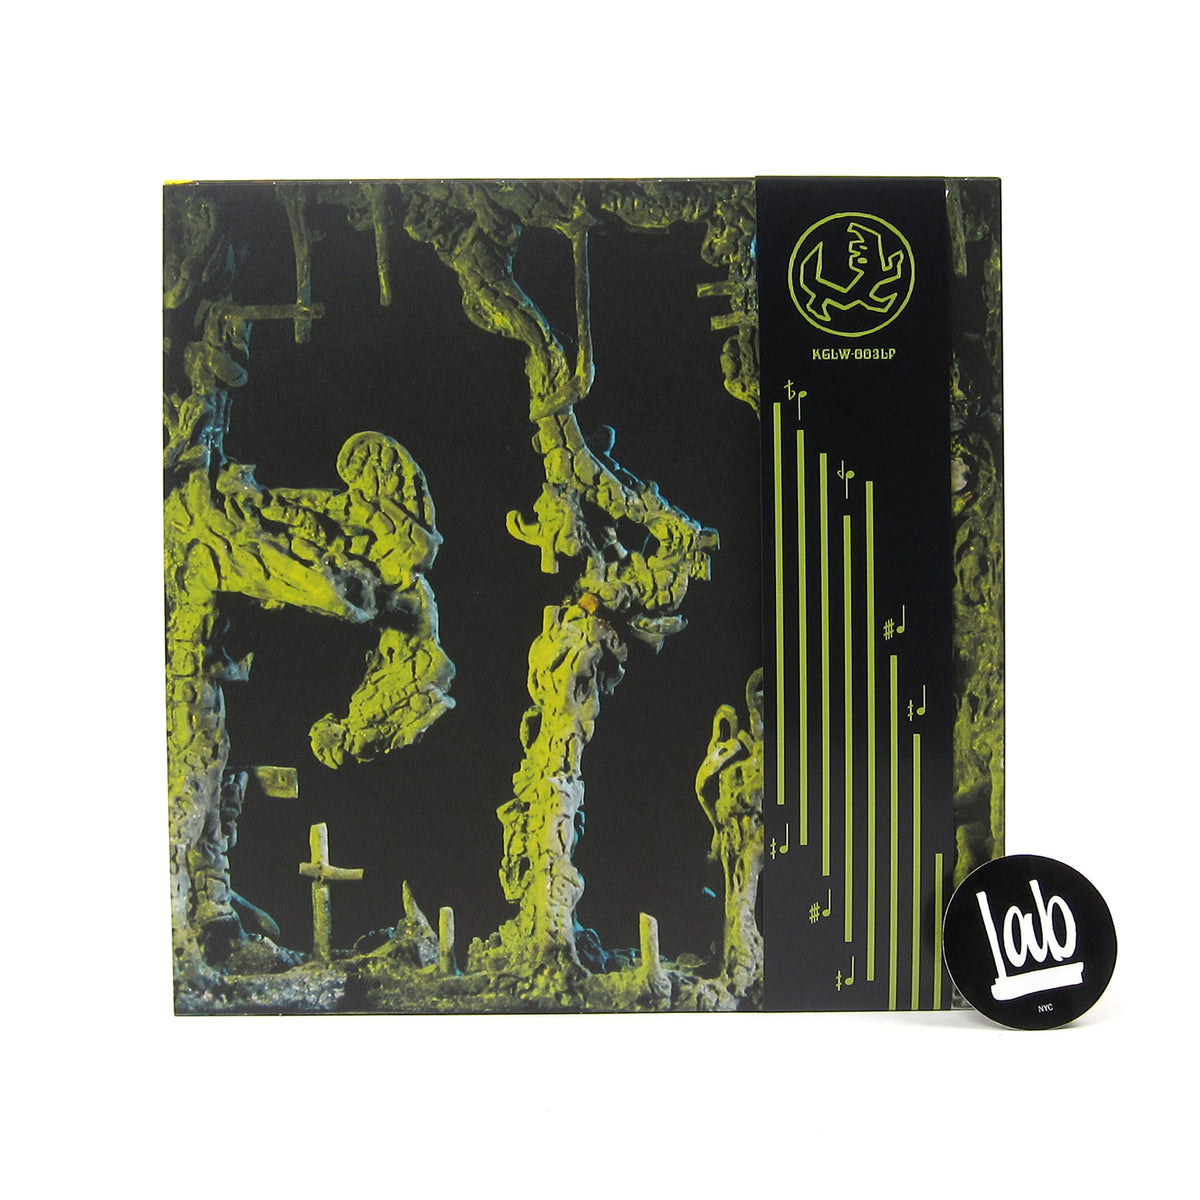 King Gizzard and the Lizard Wizard: K.G. Vinyl LP